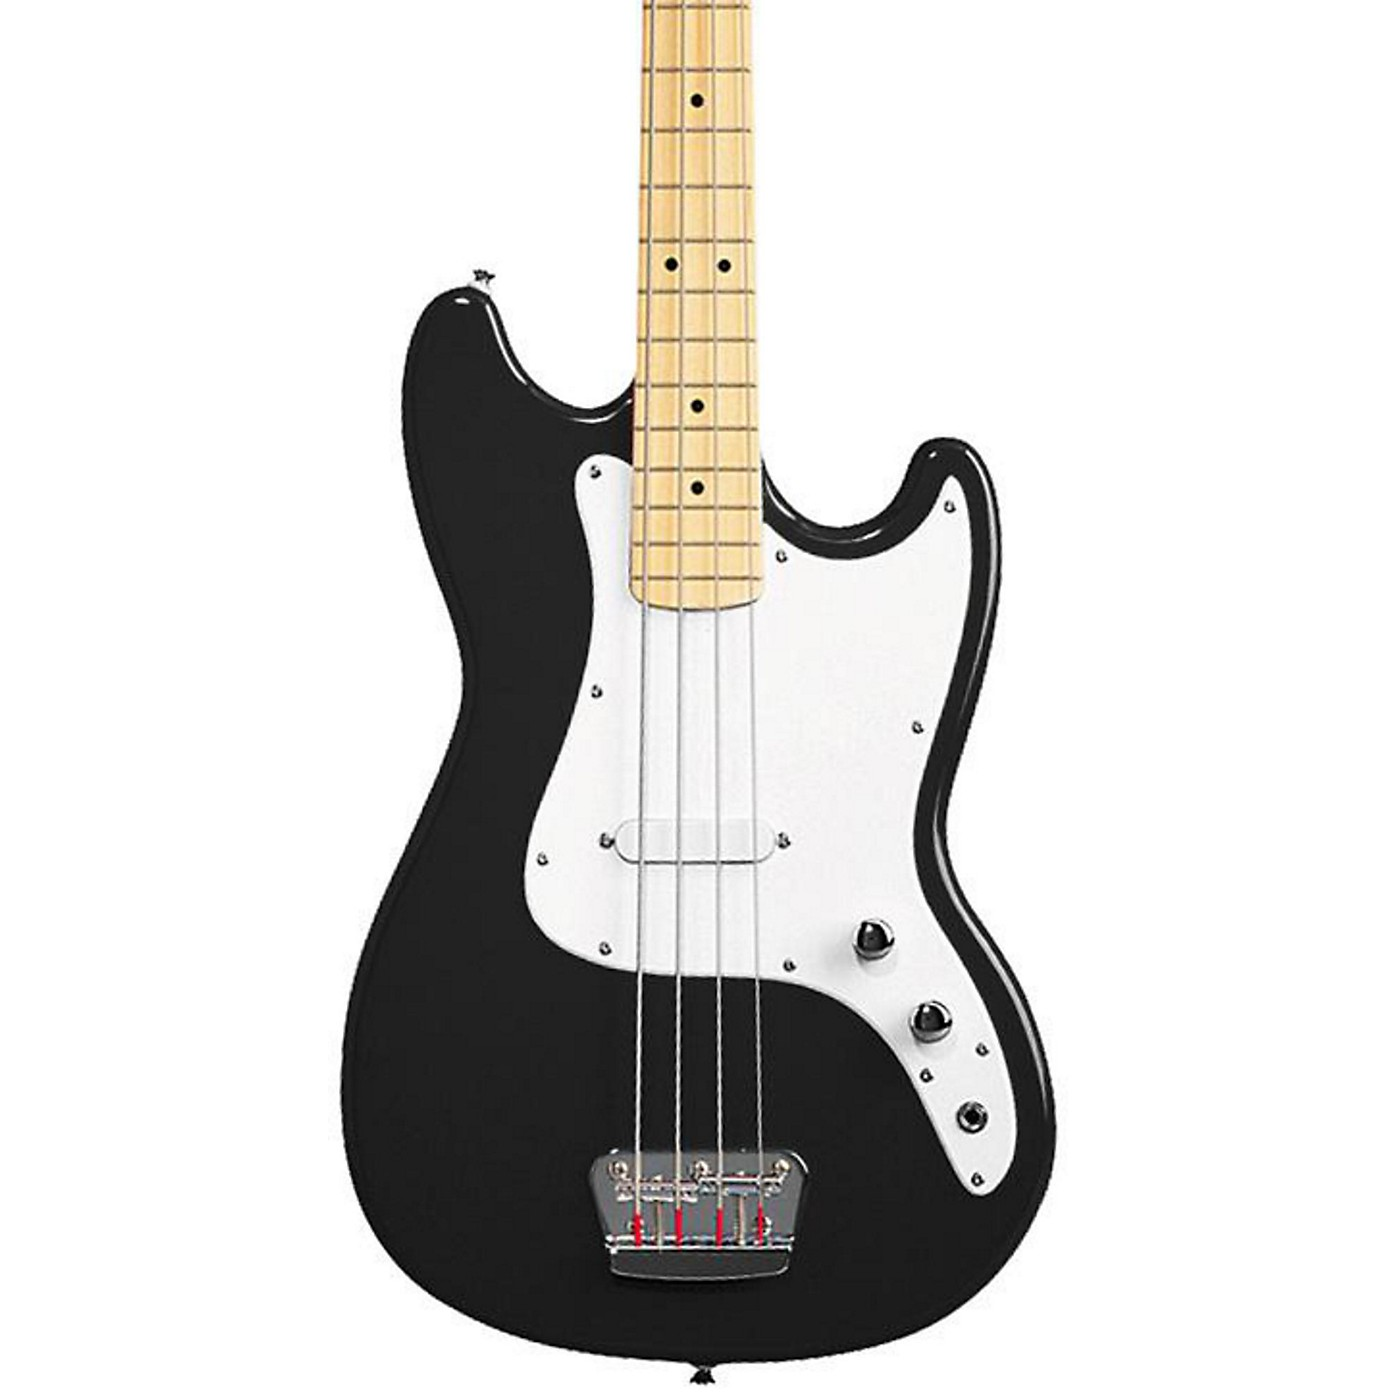 Squier Affinity Series Bronco Bass Guitar thumbnail